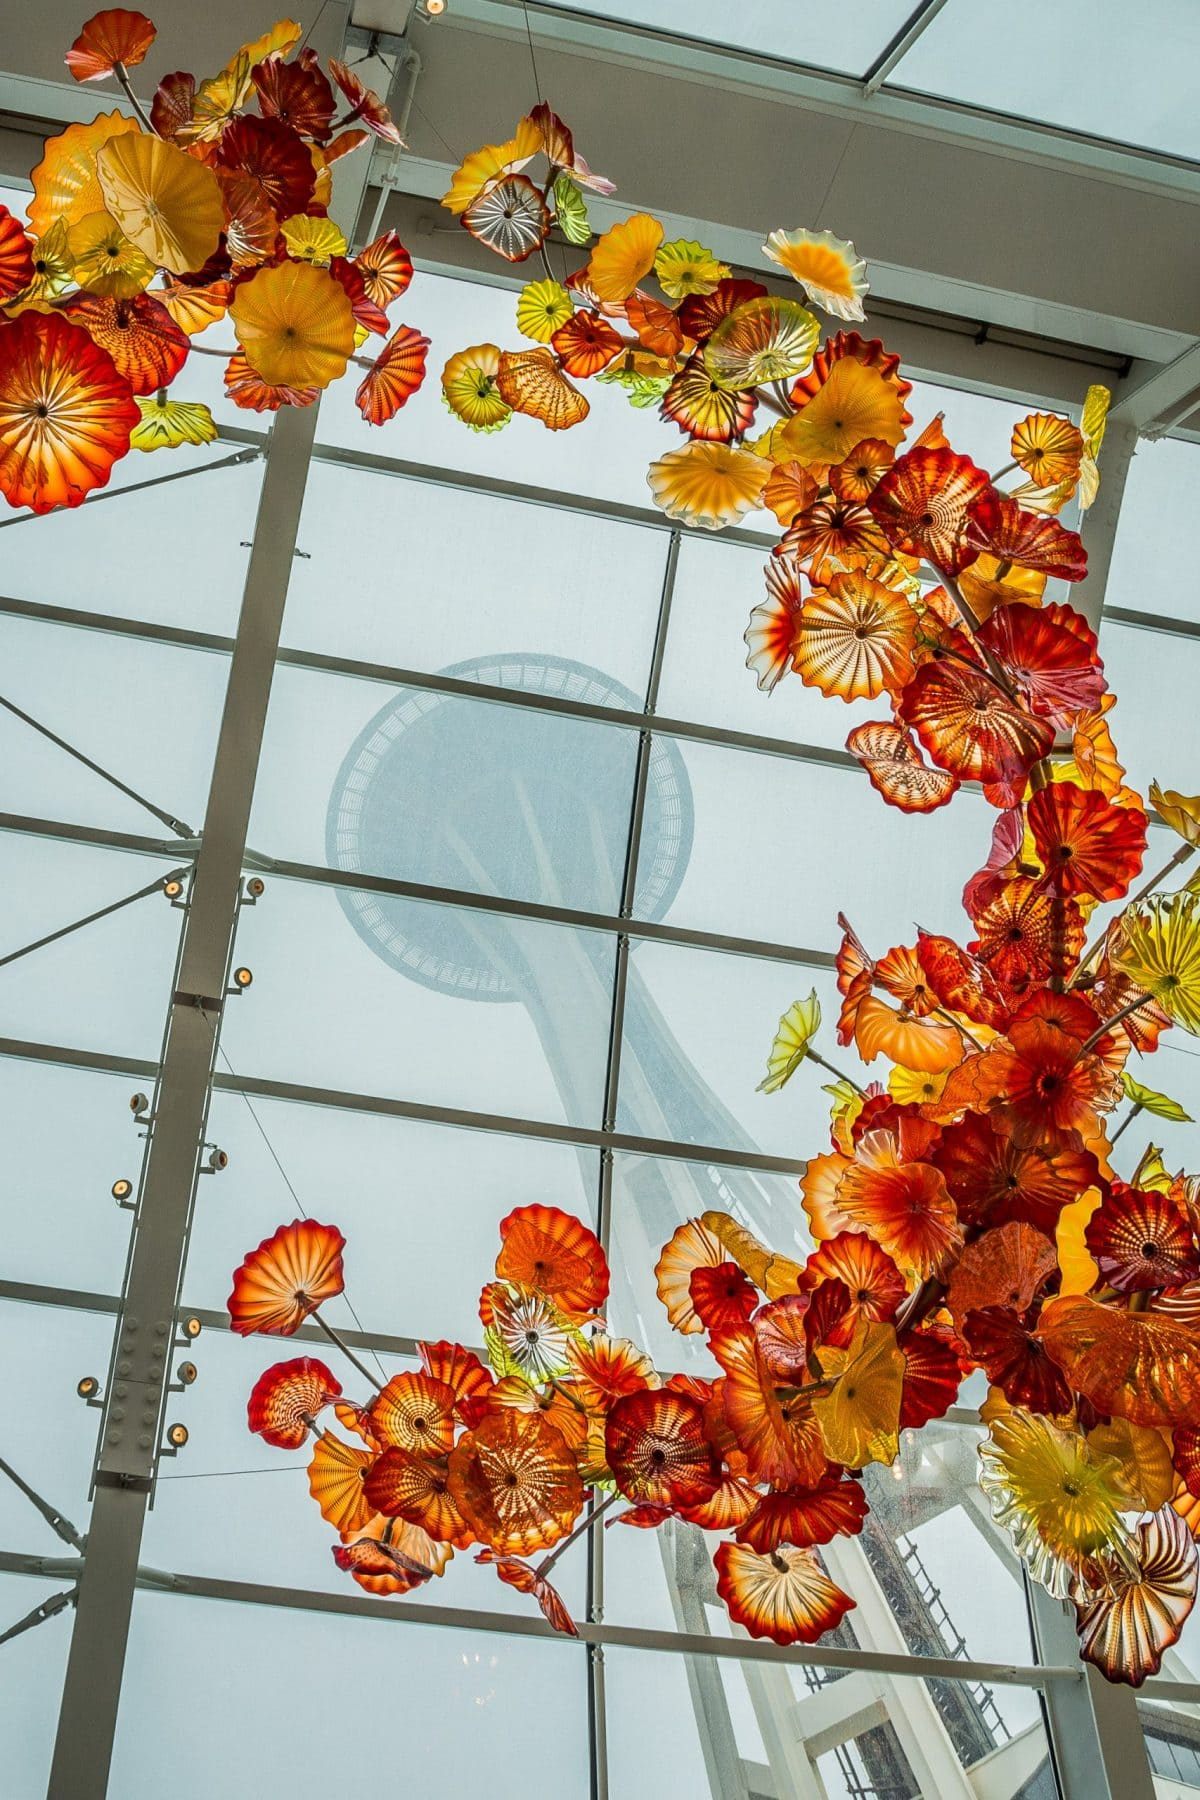 Chihuly Glass Art frames Seattle Space Needle through glass ceiling